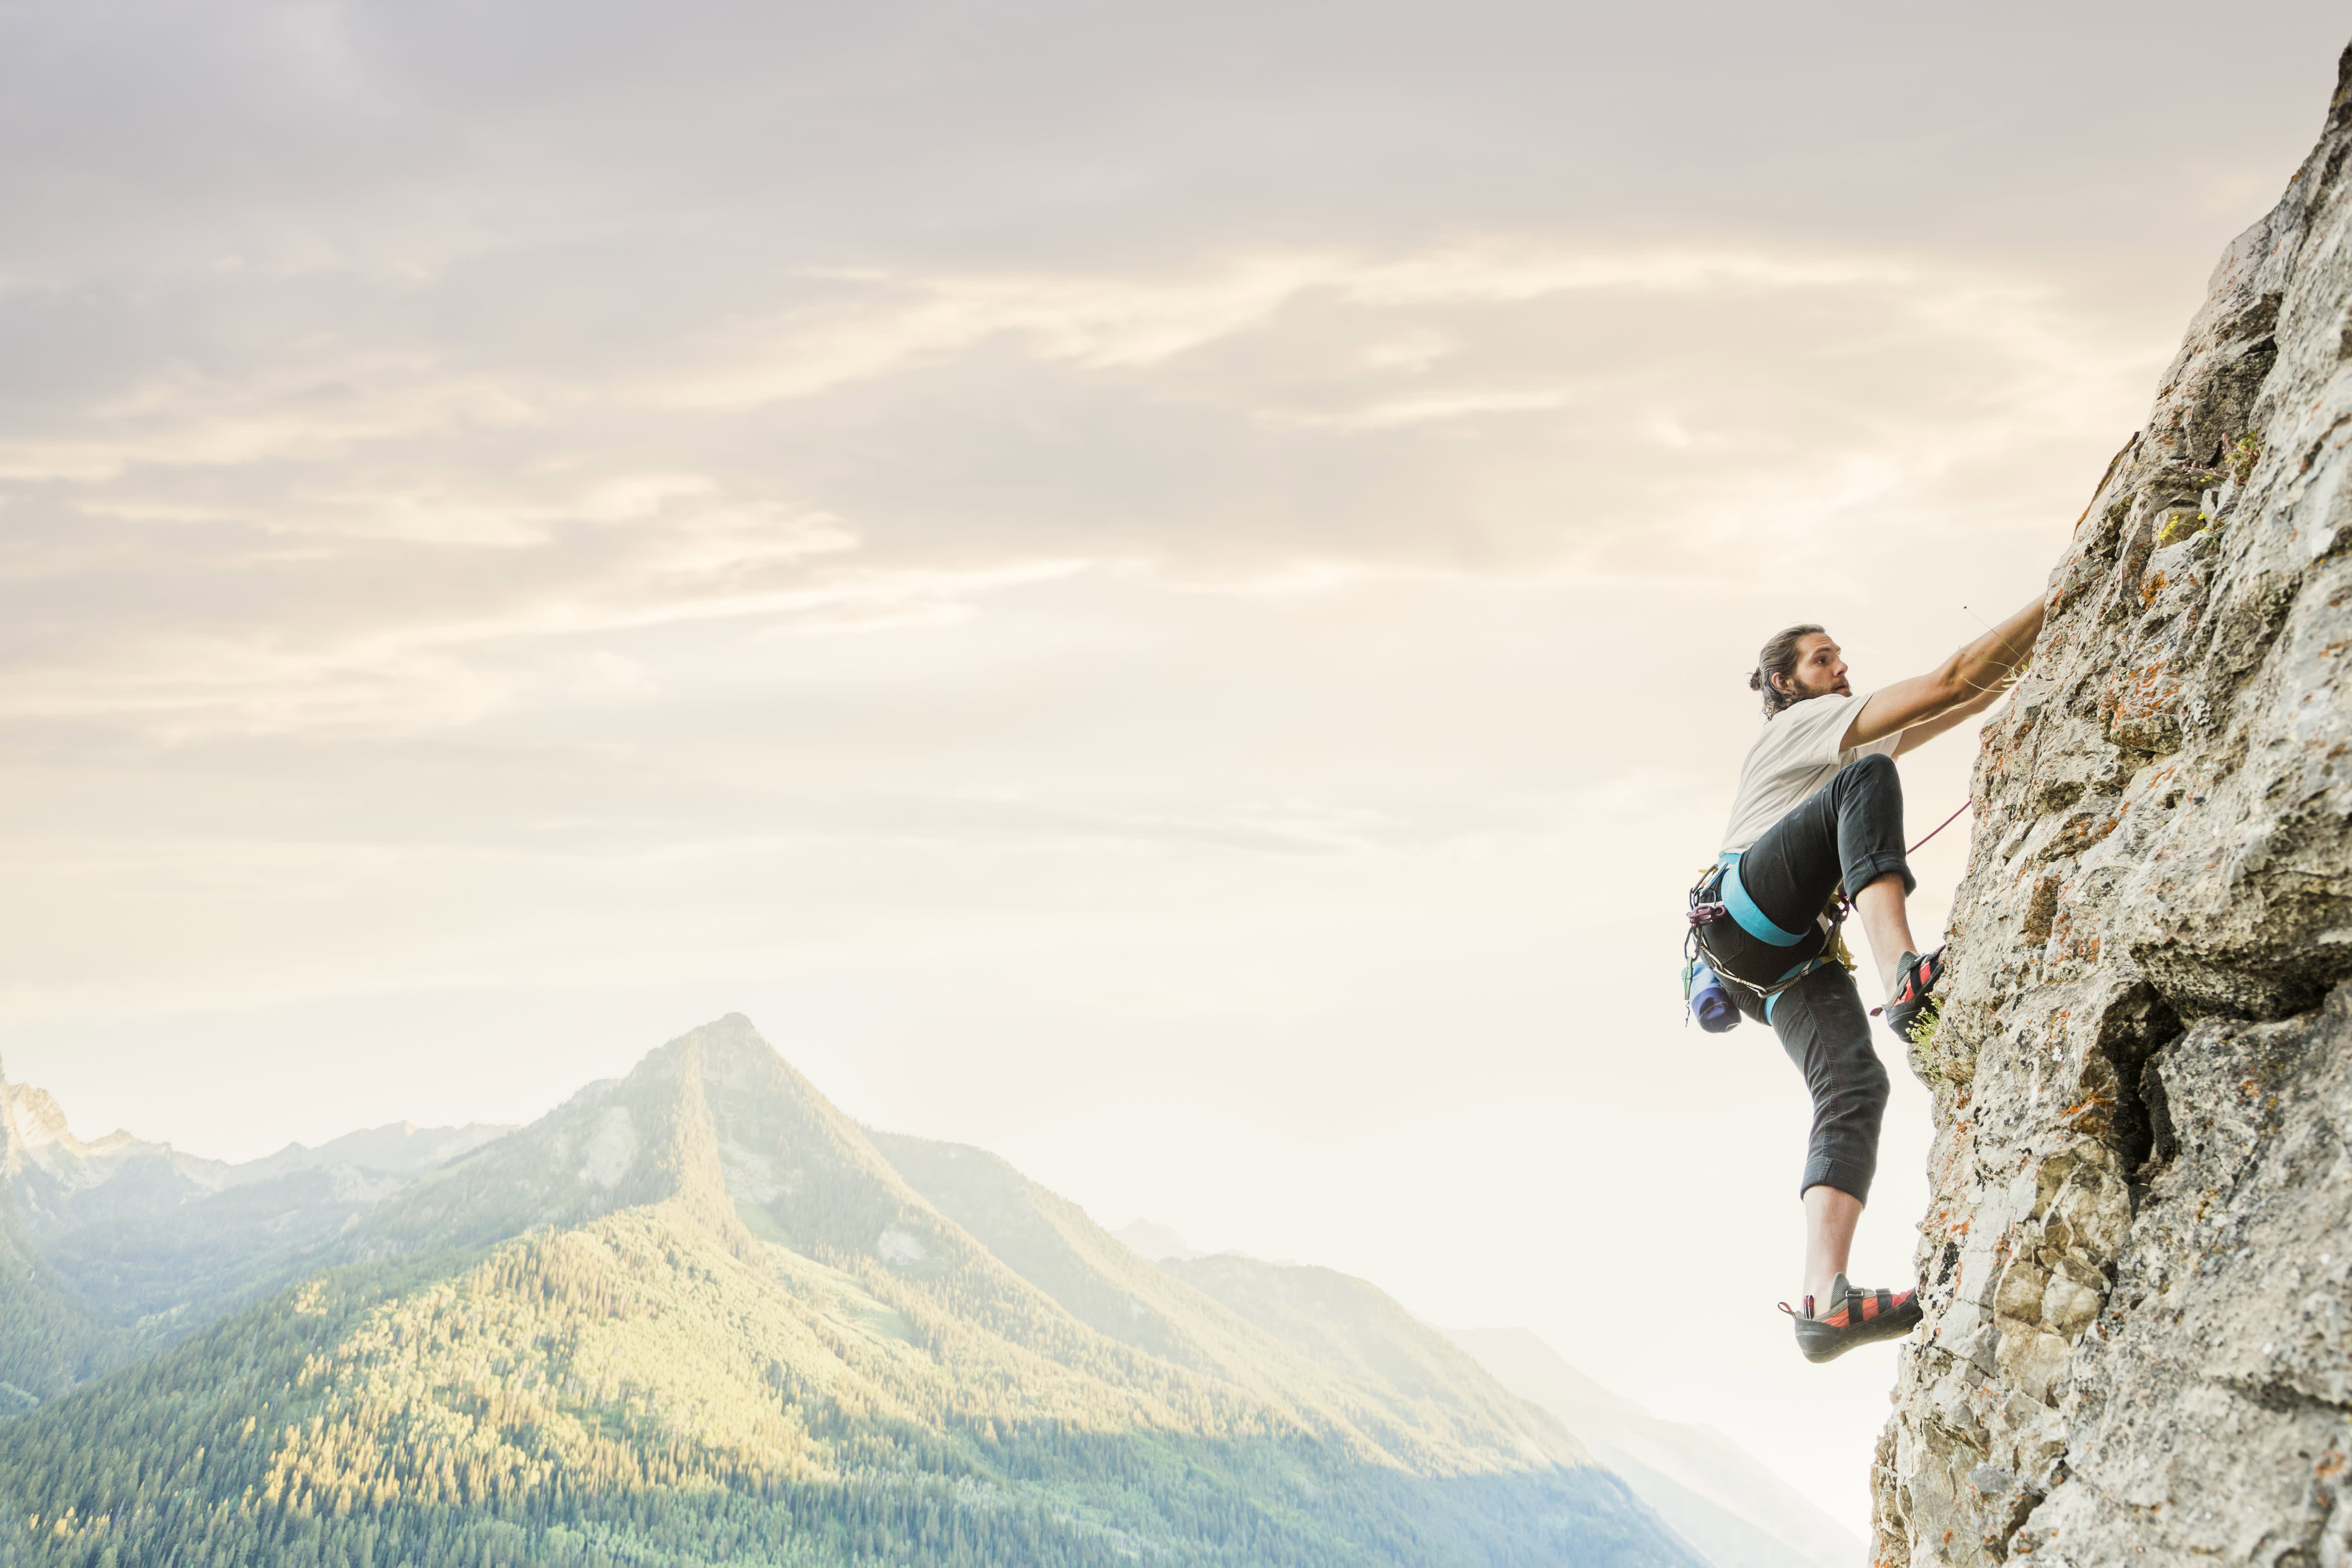 Do you know the difference between risk and return? Take this quiz and find out